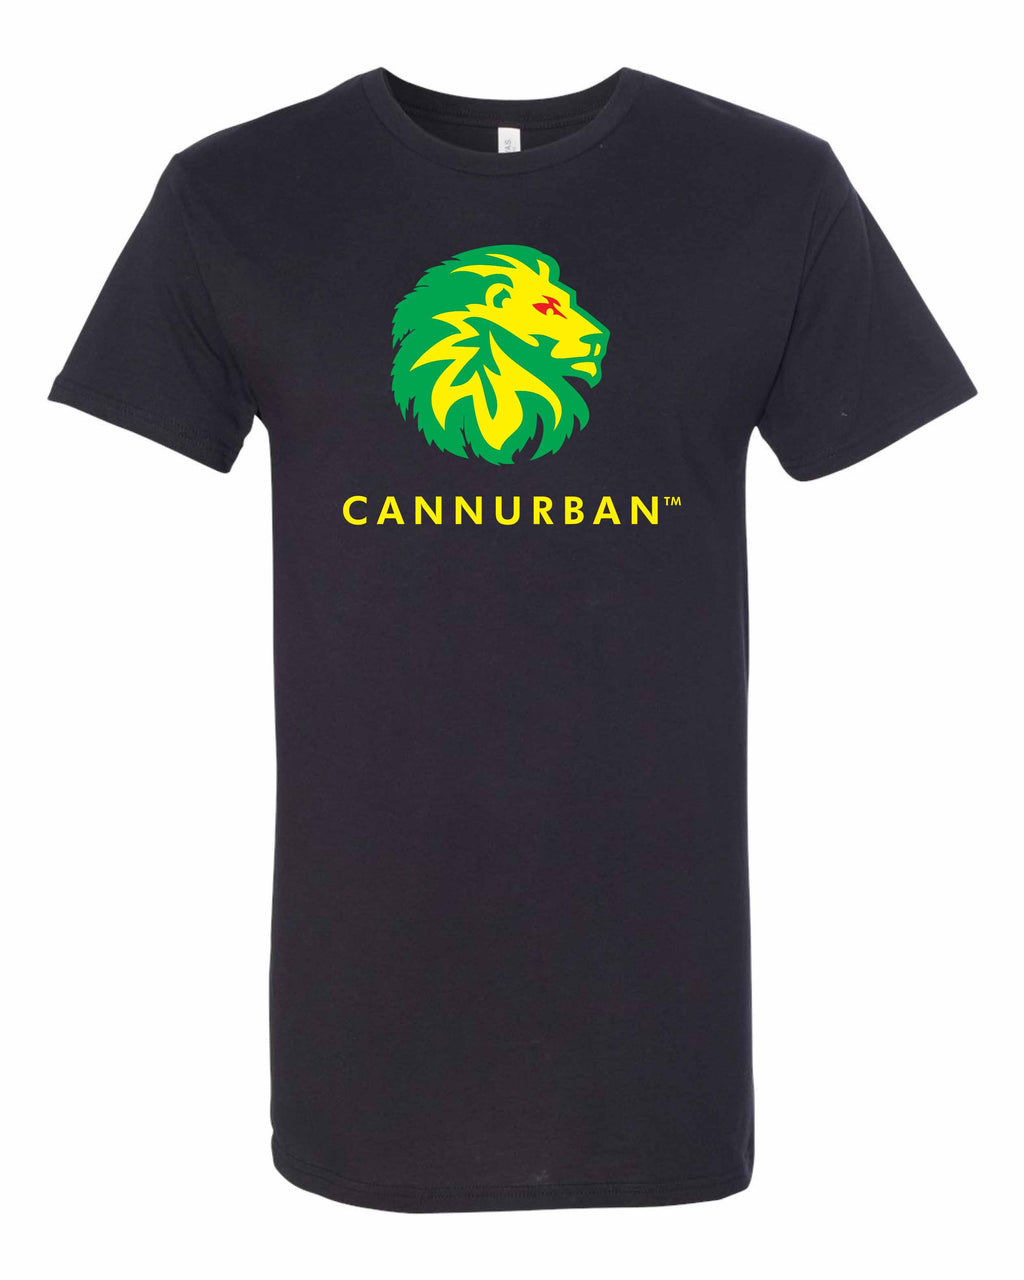 Cannurban Rasta Lion Logo T-shirt